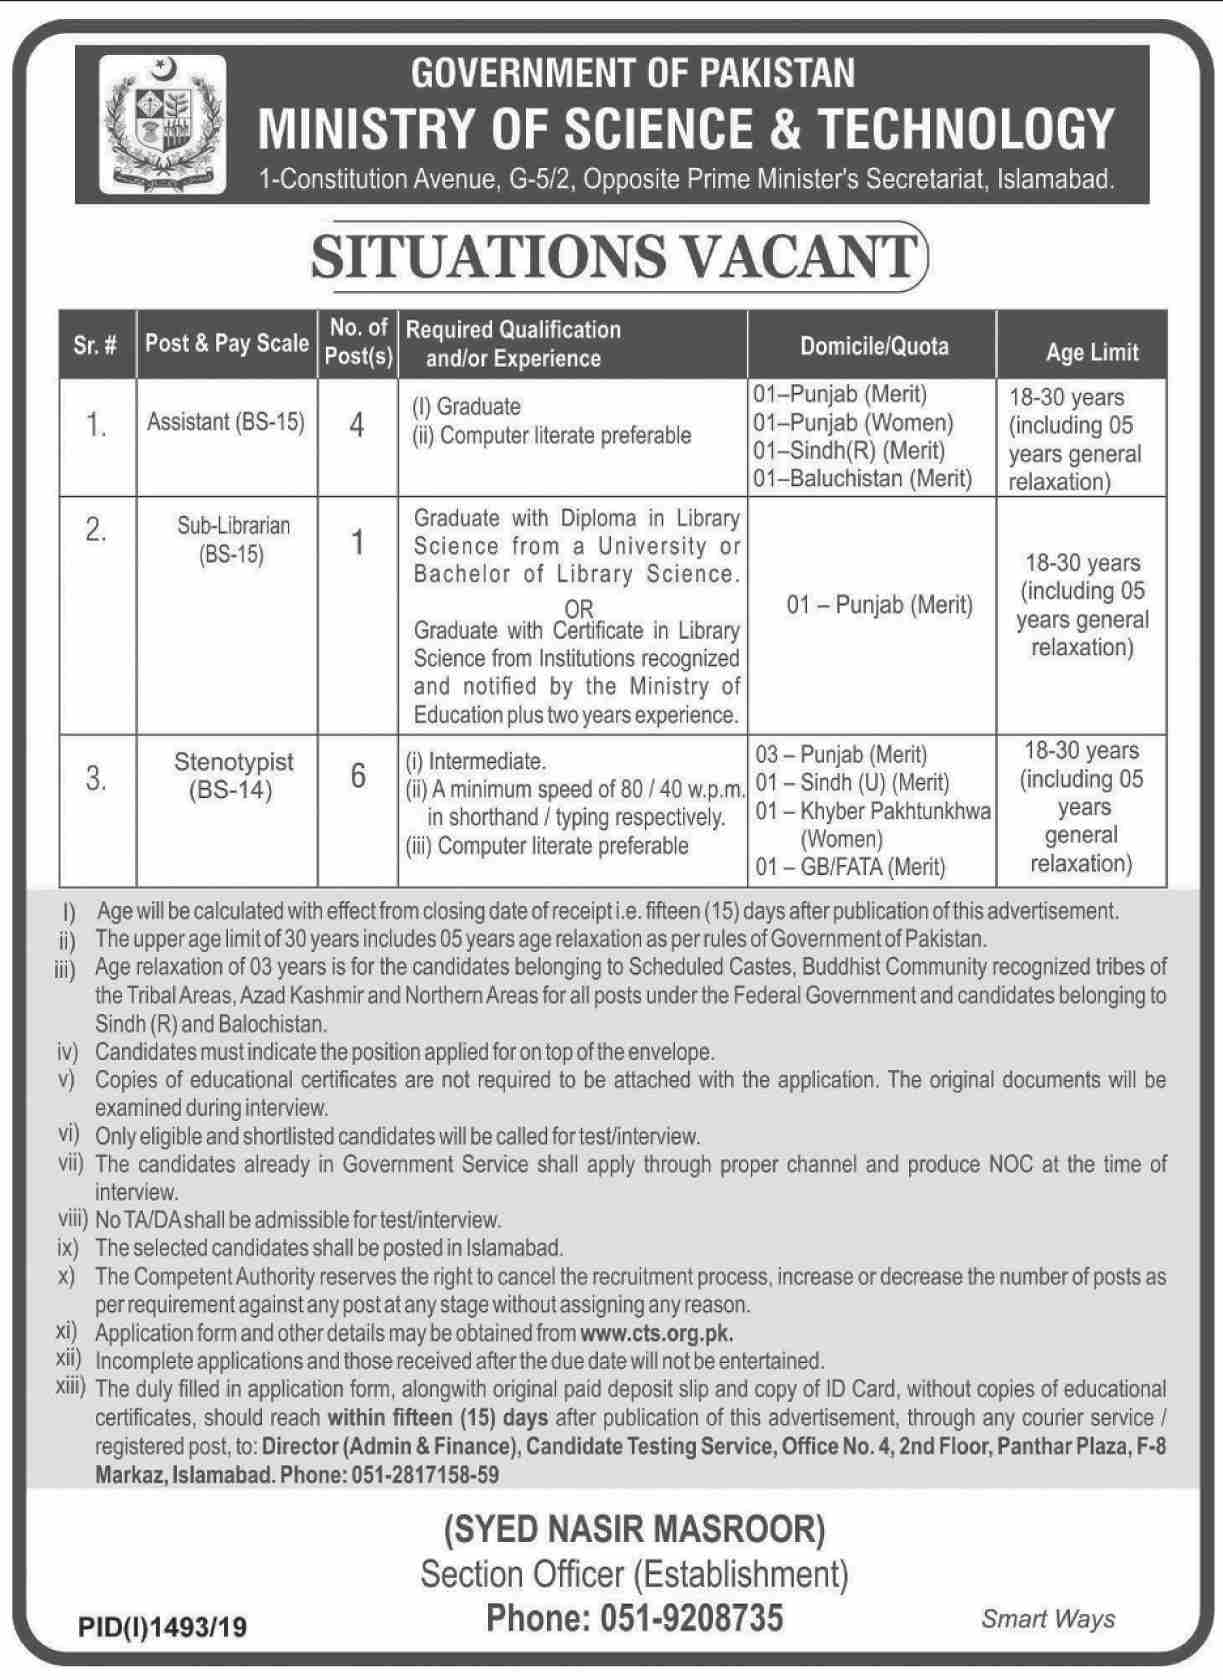 Ministry of Science and Technology Govt of Pakistan jobs 2019